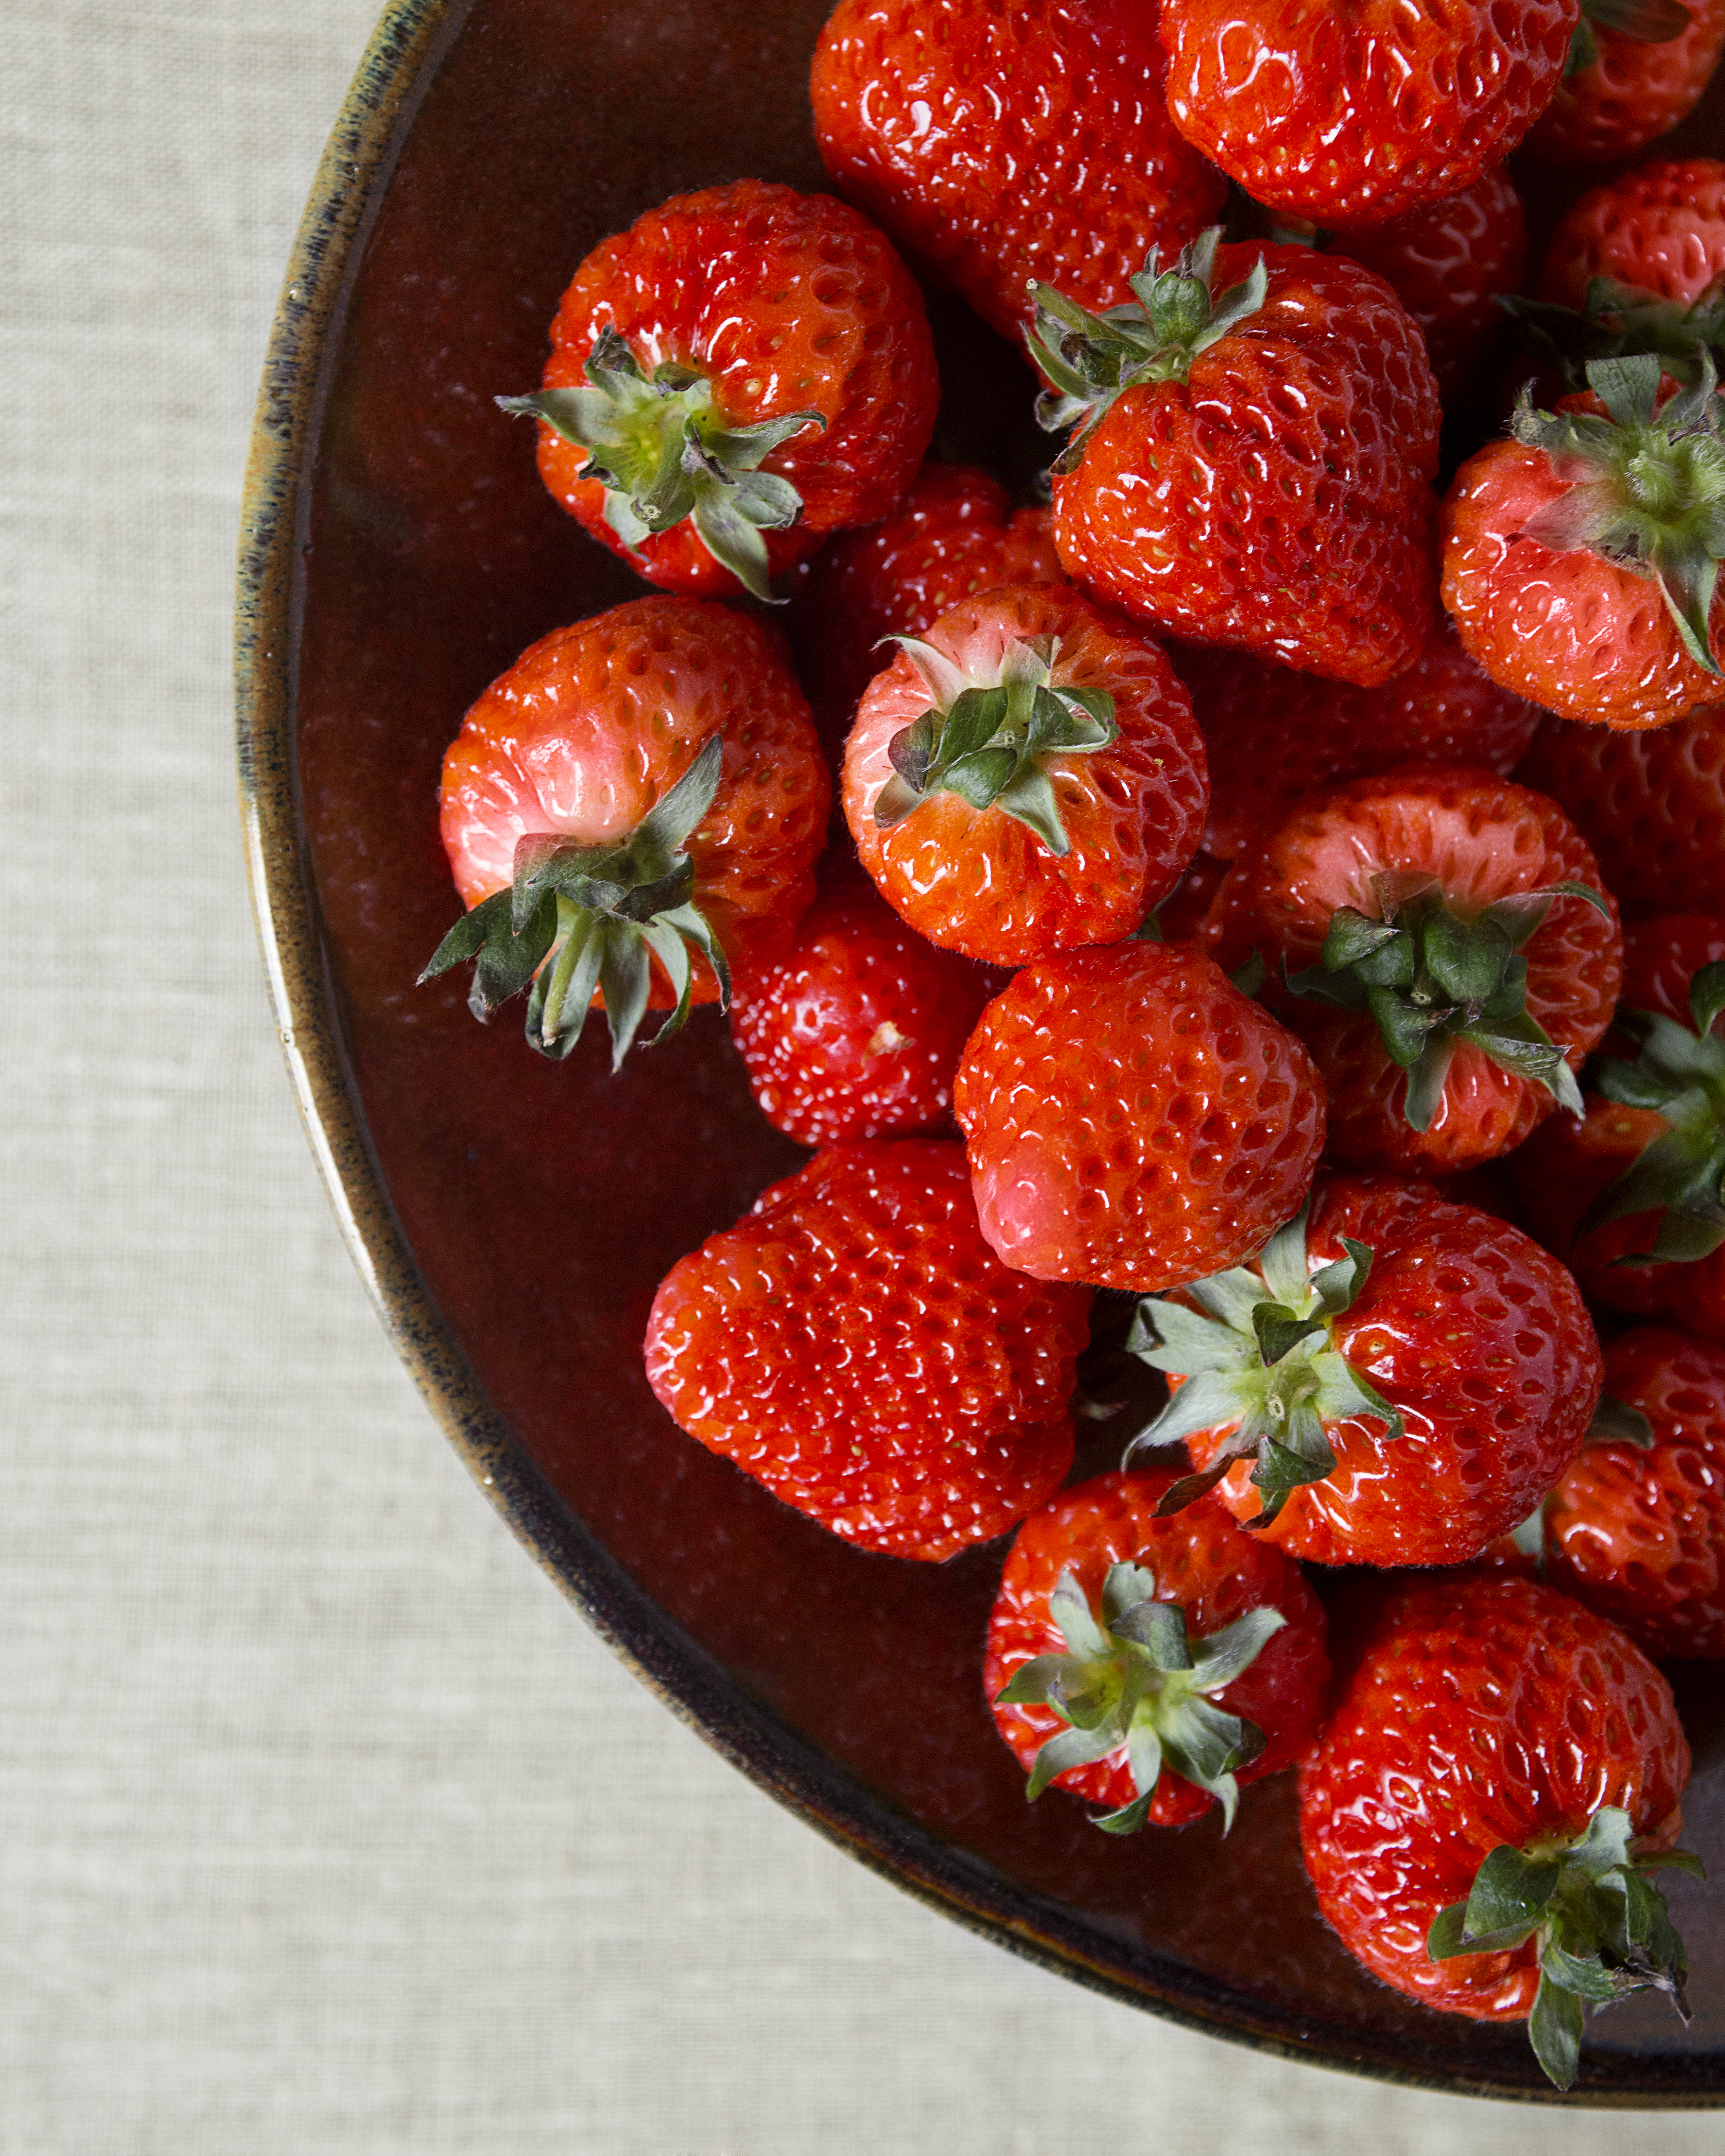 A brown bowl filled with strawberries.